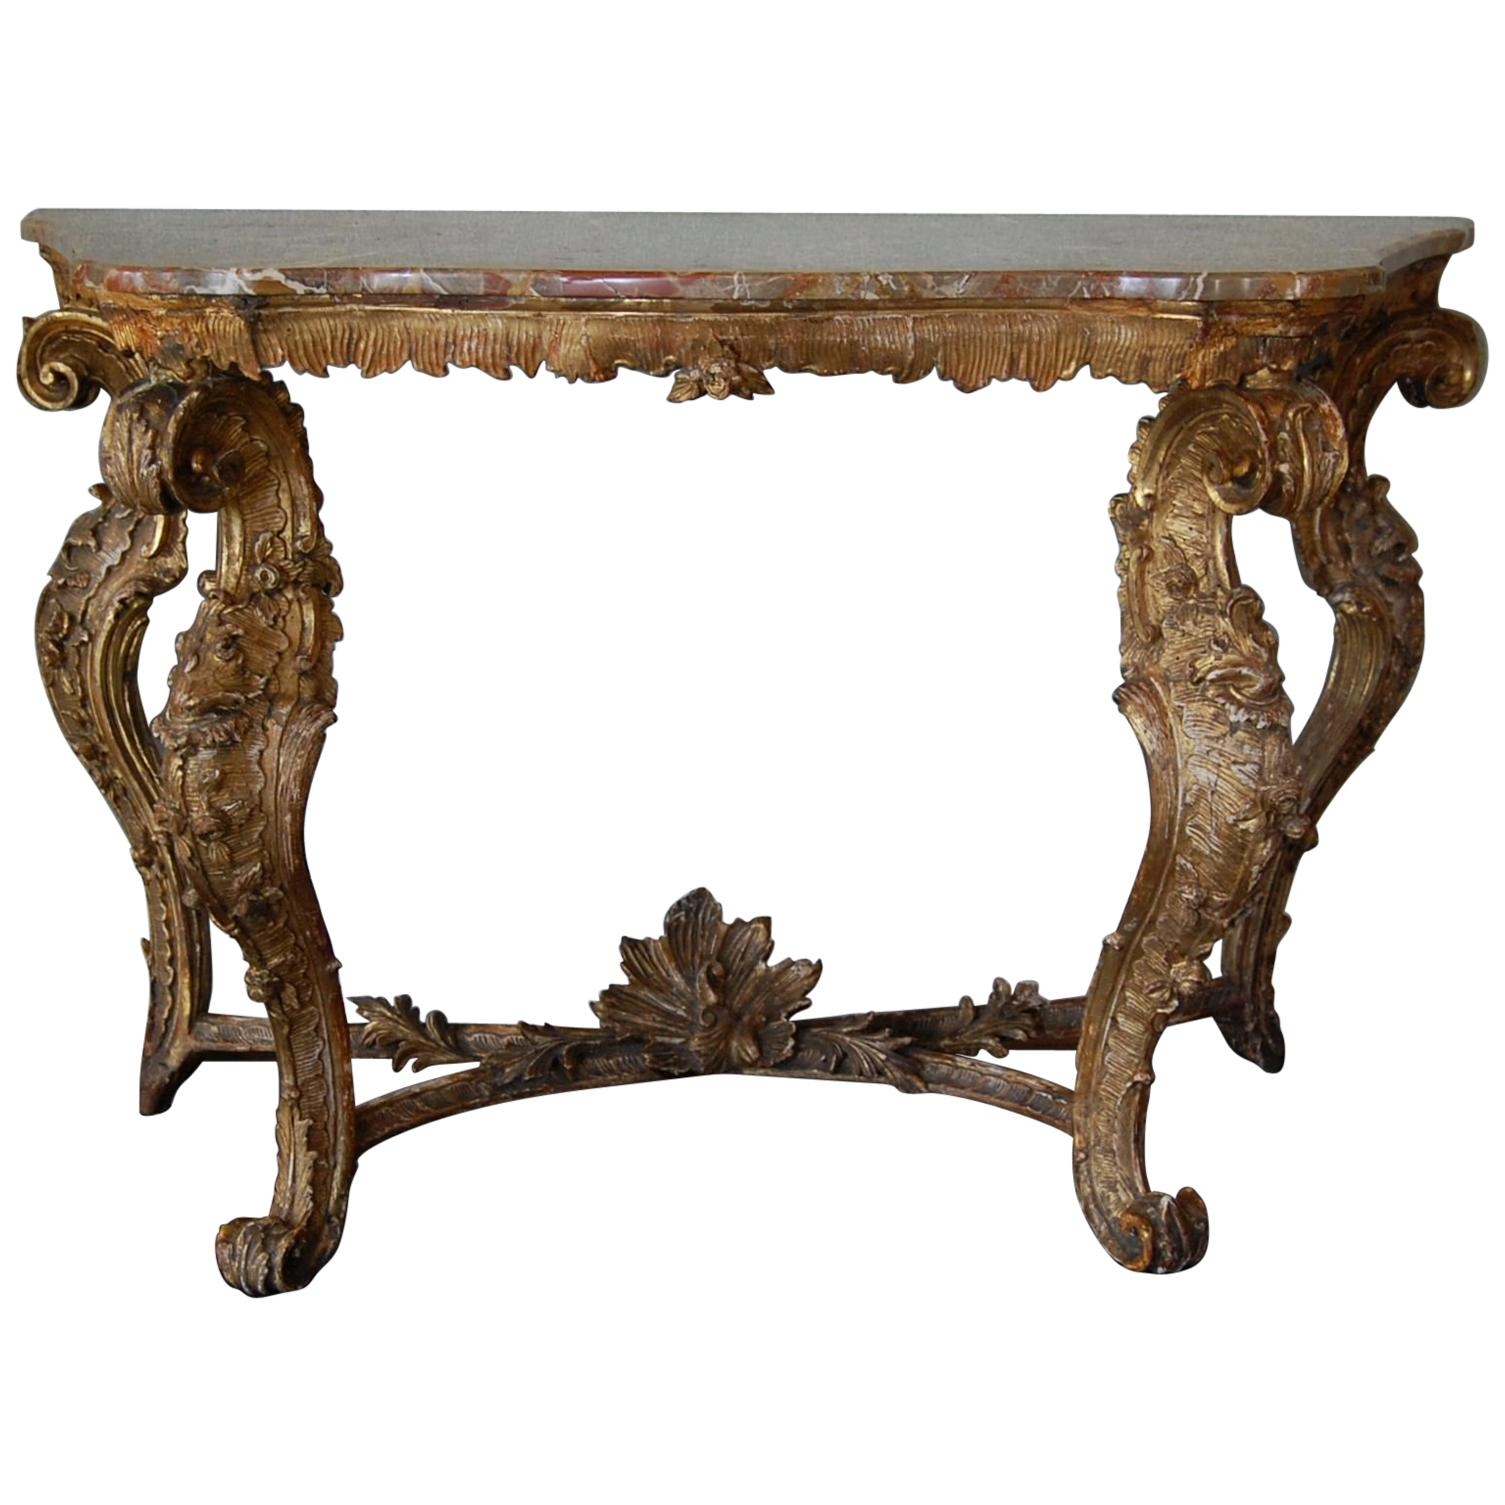 Mid-18th Century Venetian Carved Gilt Rococo Console Table with Marble Top